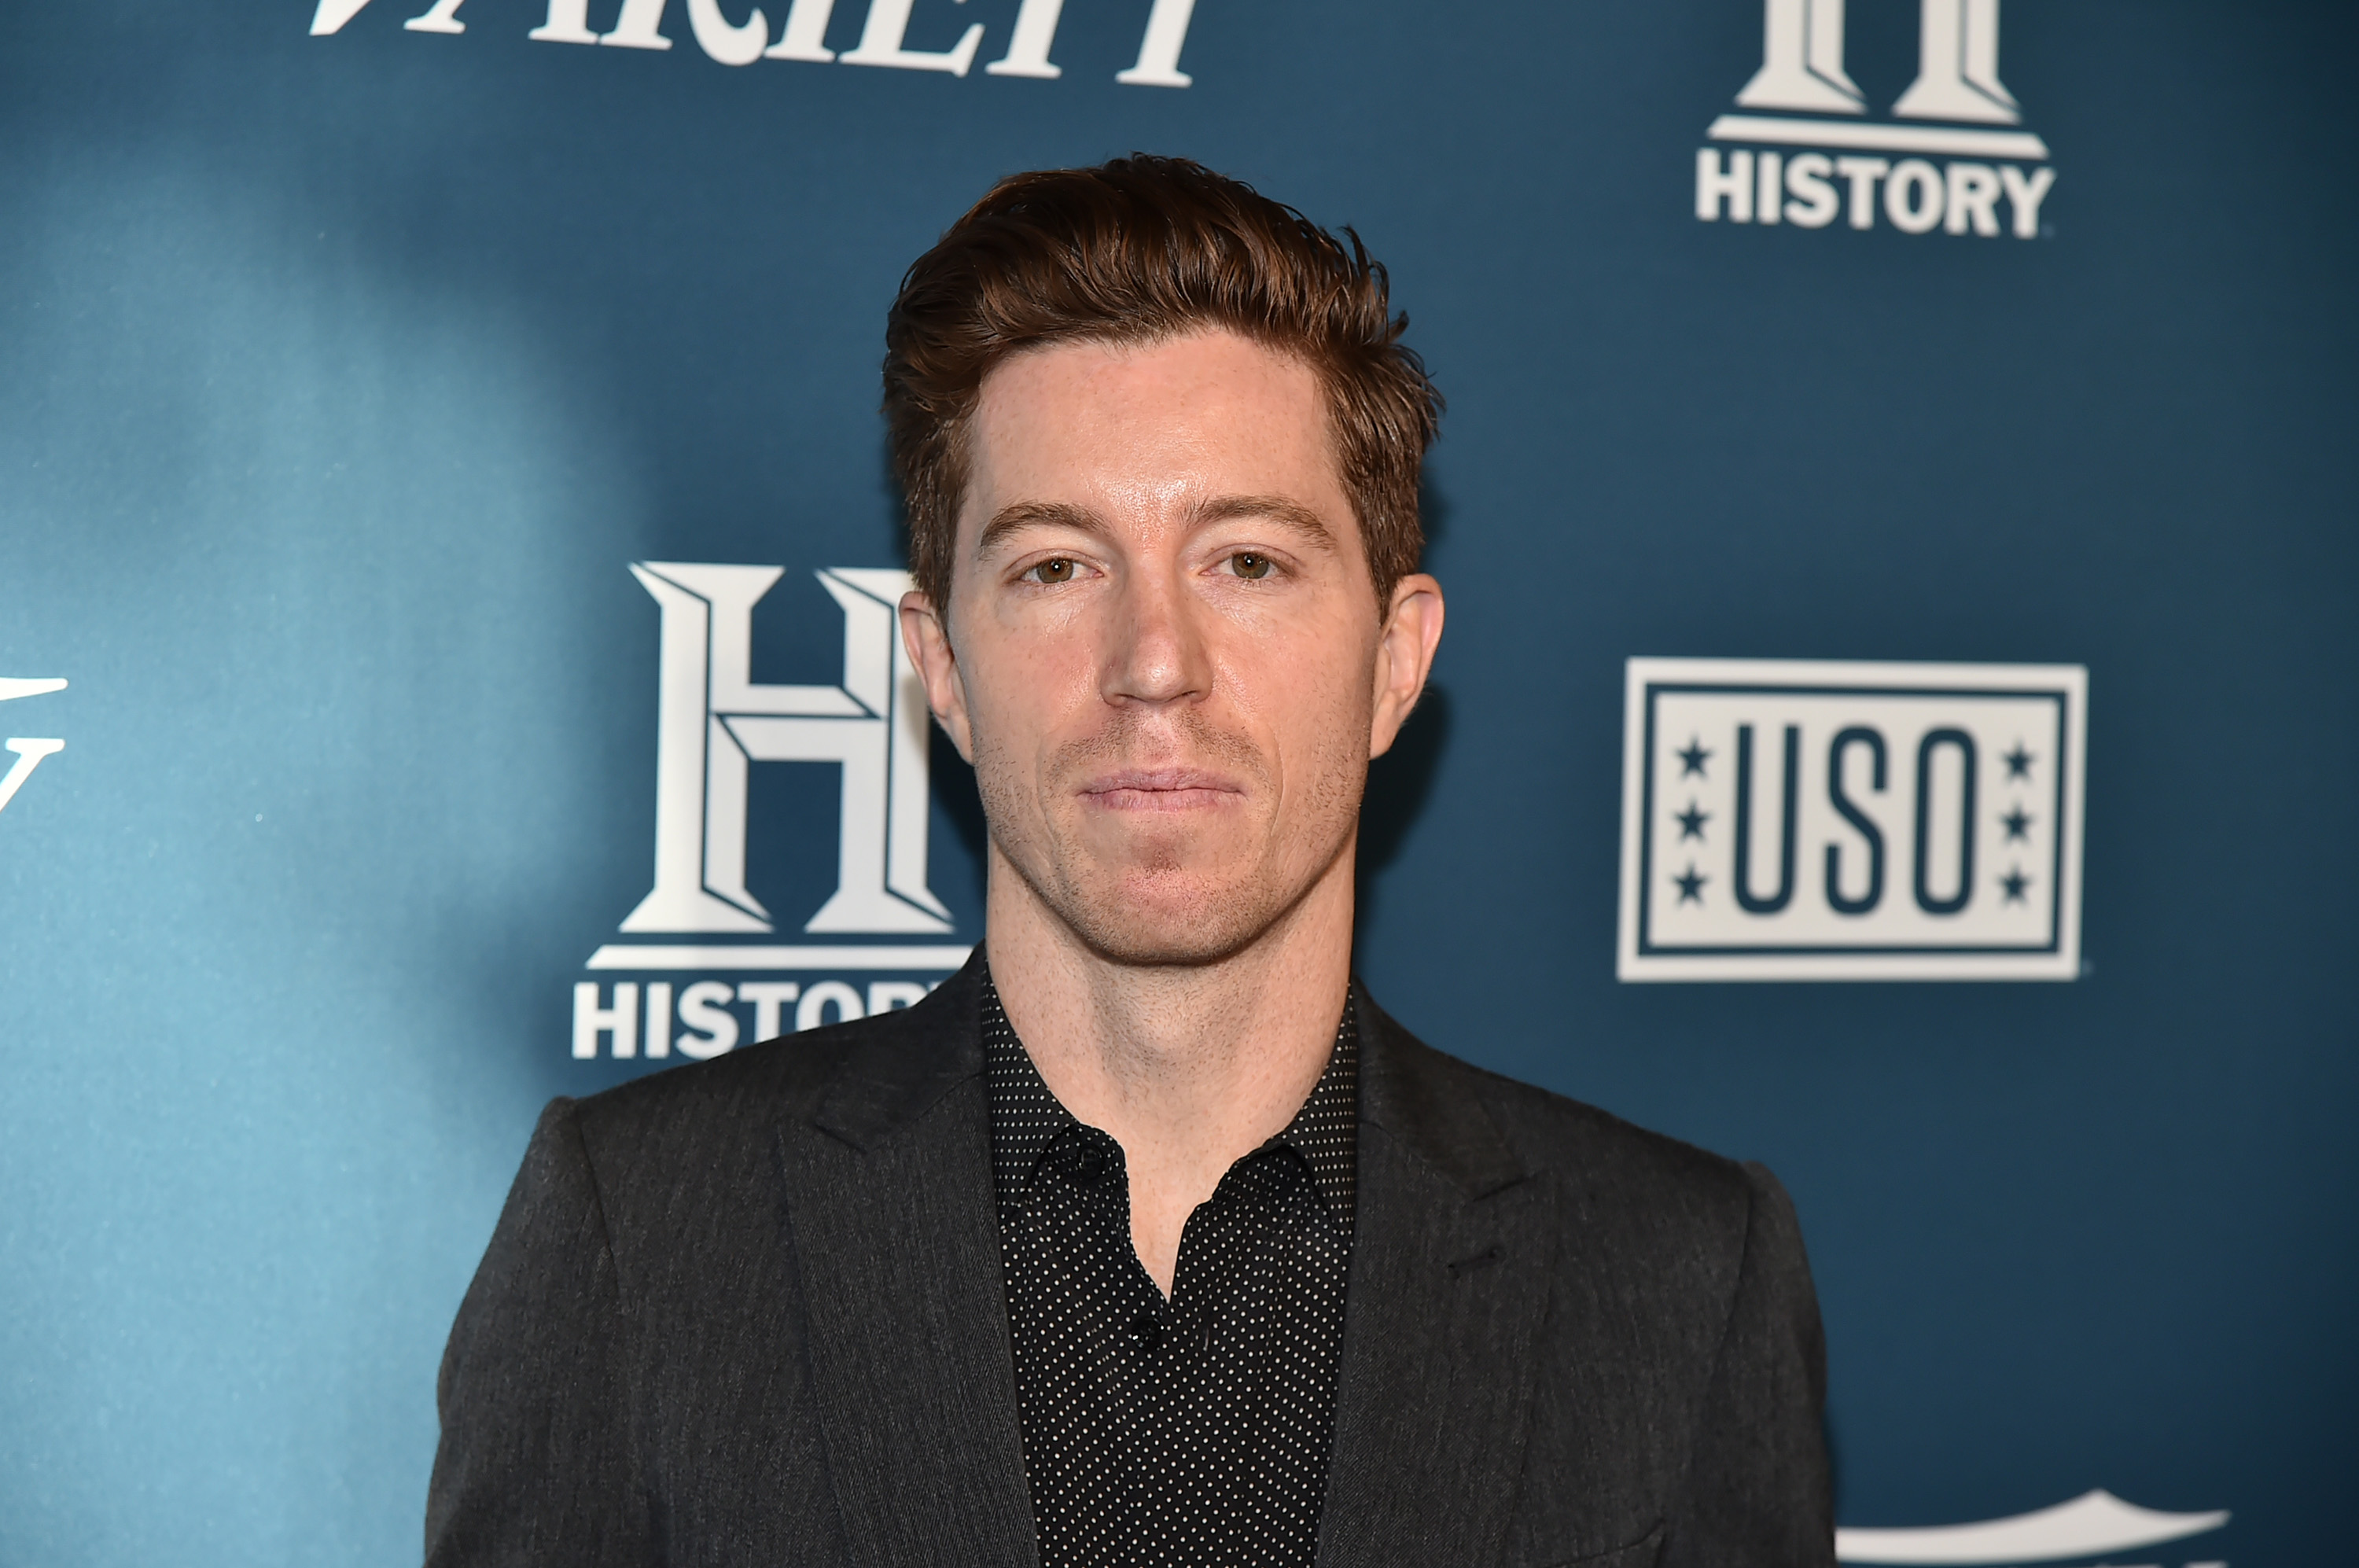 Shaun White Is Looking for an $11 Million Buyer for His Malibu Beach House